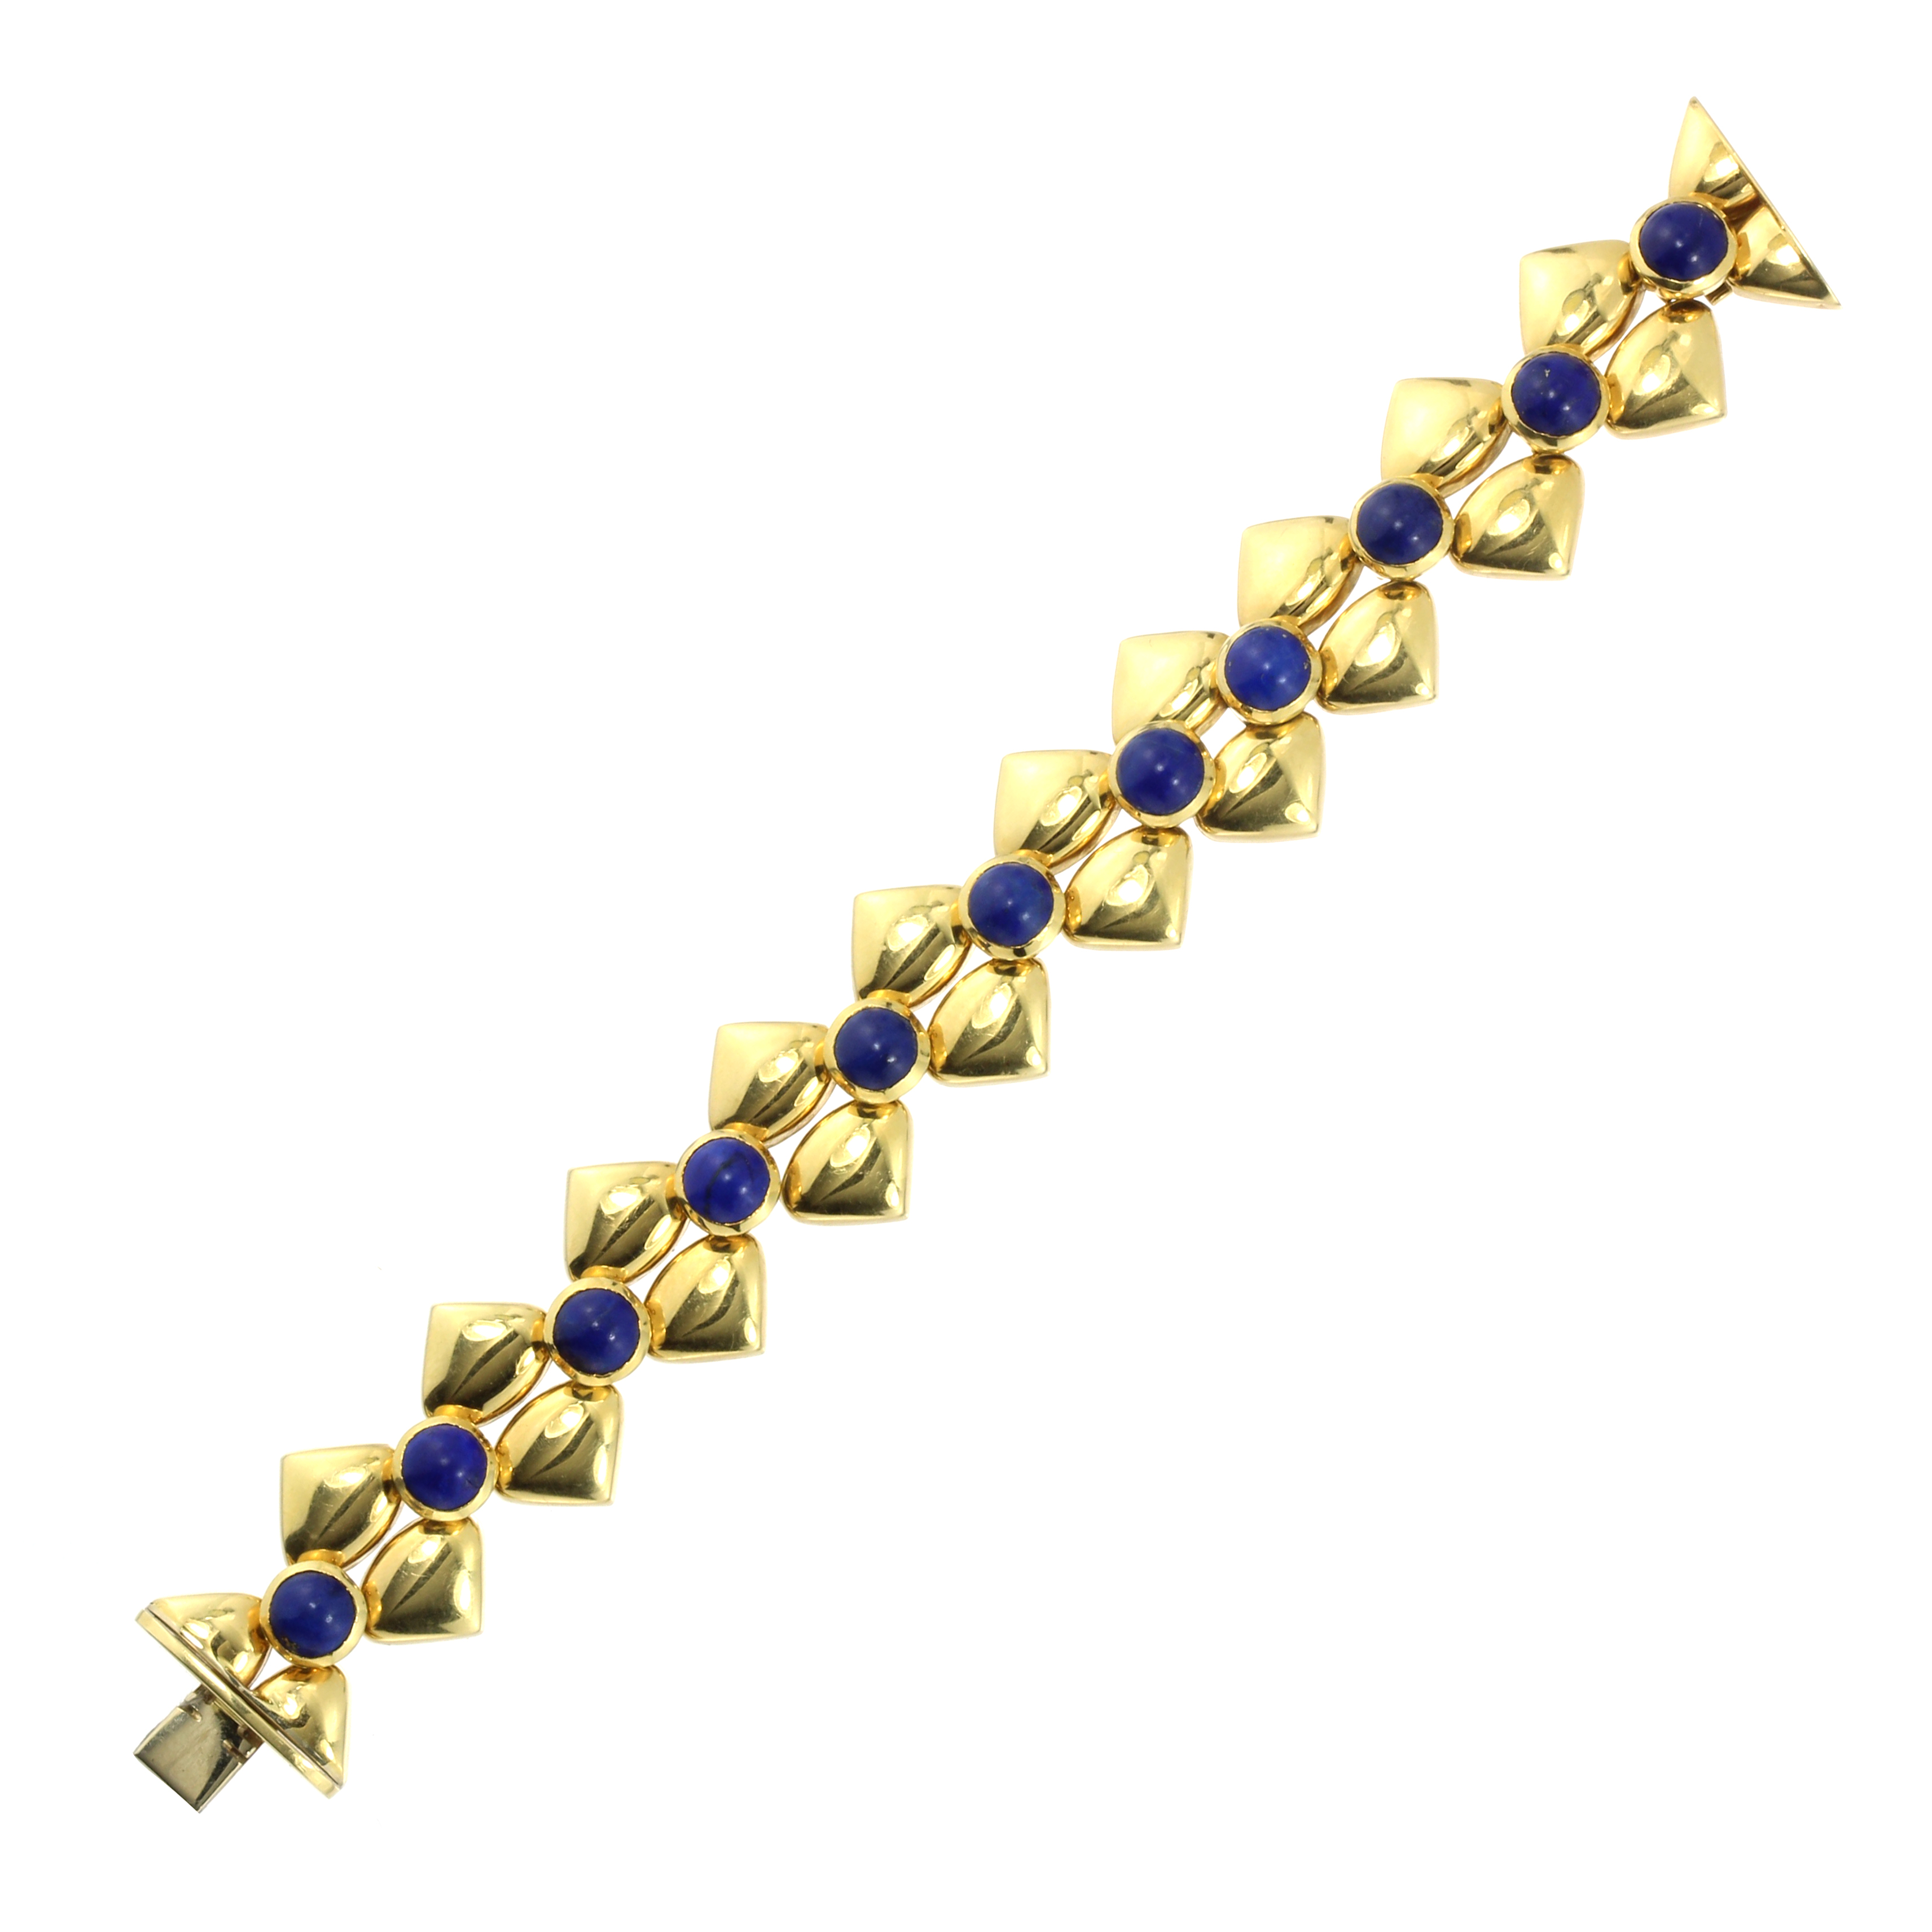 Los 57 - A LAPIS LAZULI BRACELET, CIRCA 1975 set with a single row of eleven circular lapis lazuli